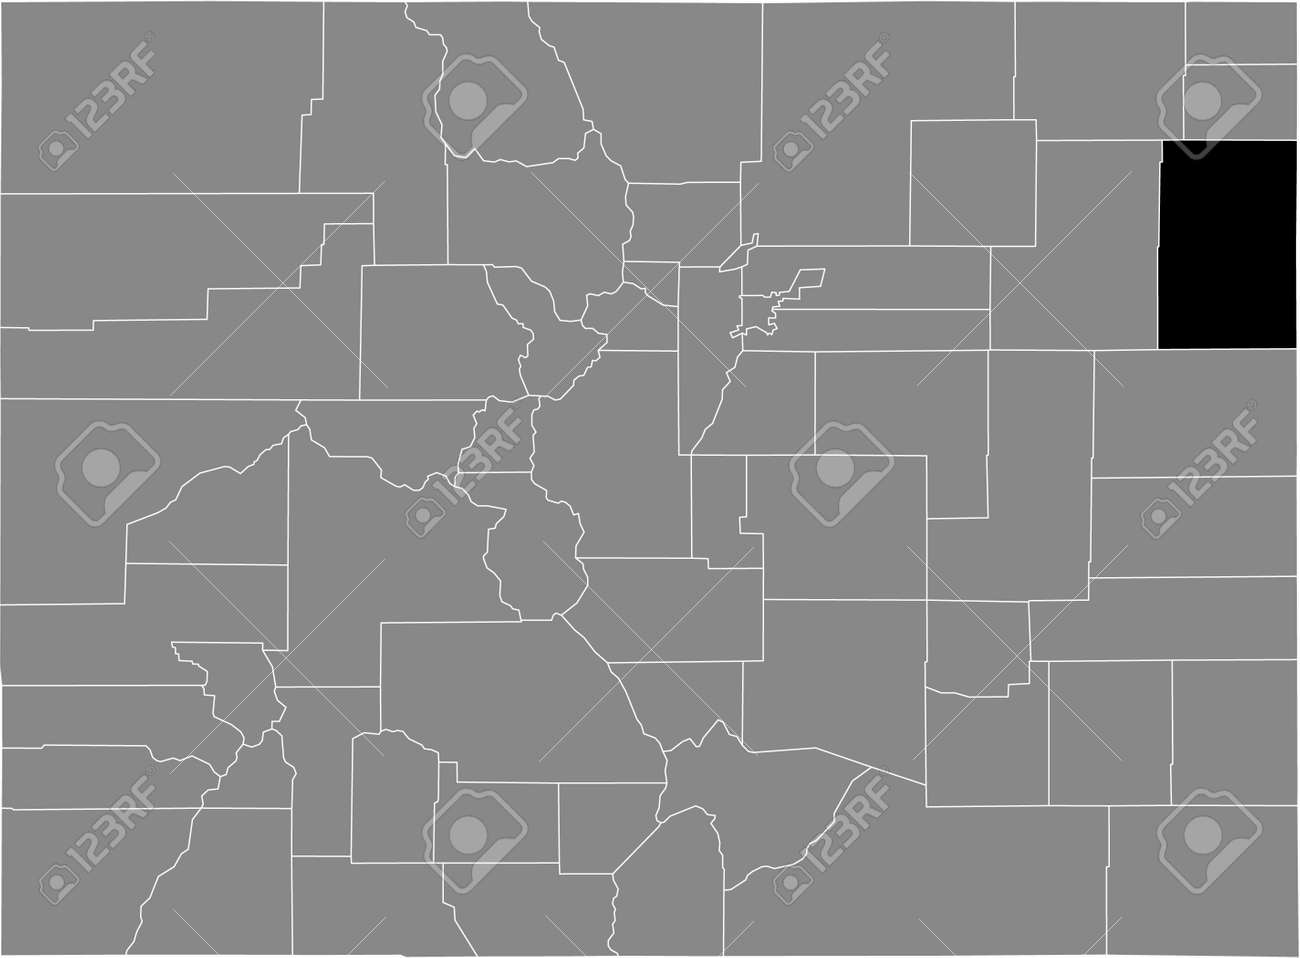 Black highlighted location map of the US Yuma county inside gray map of the Federal State of Colorado, USA - 169913237